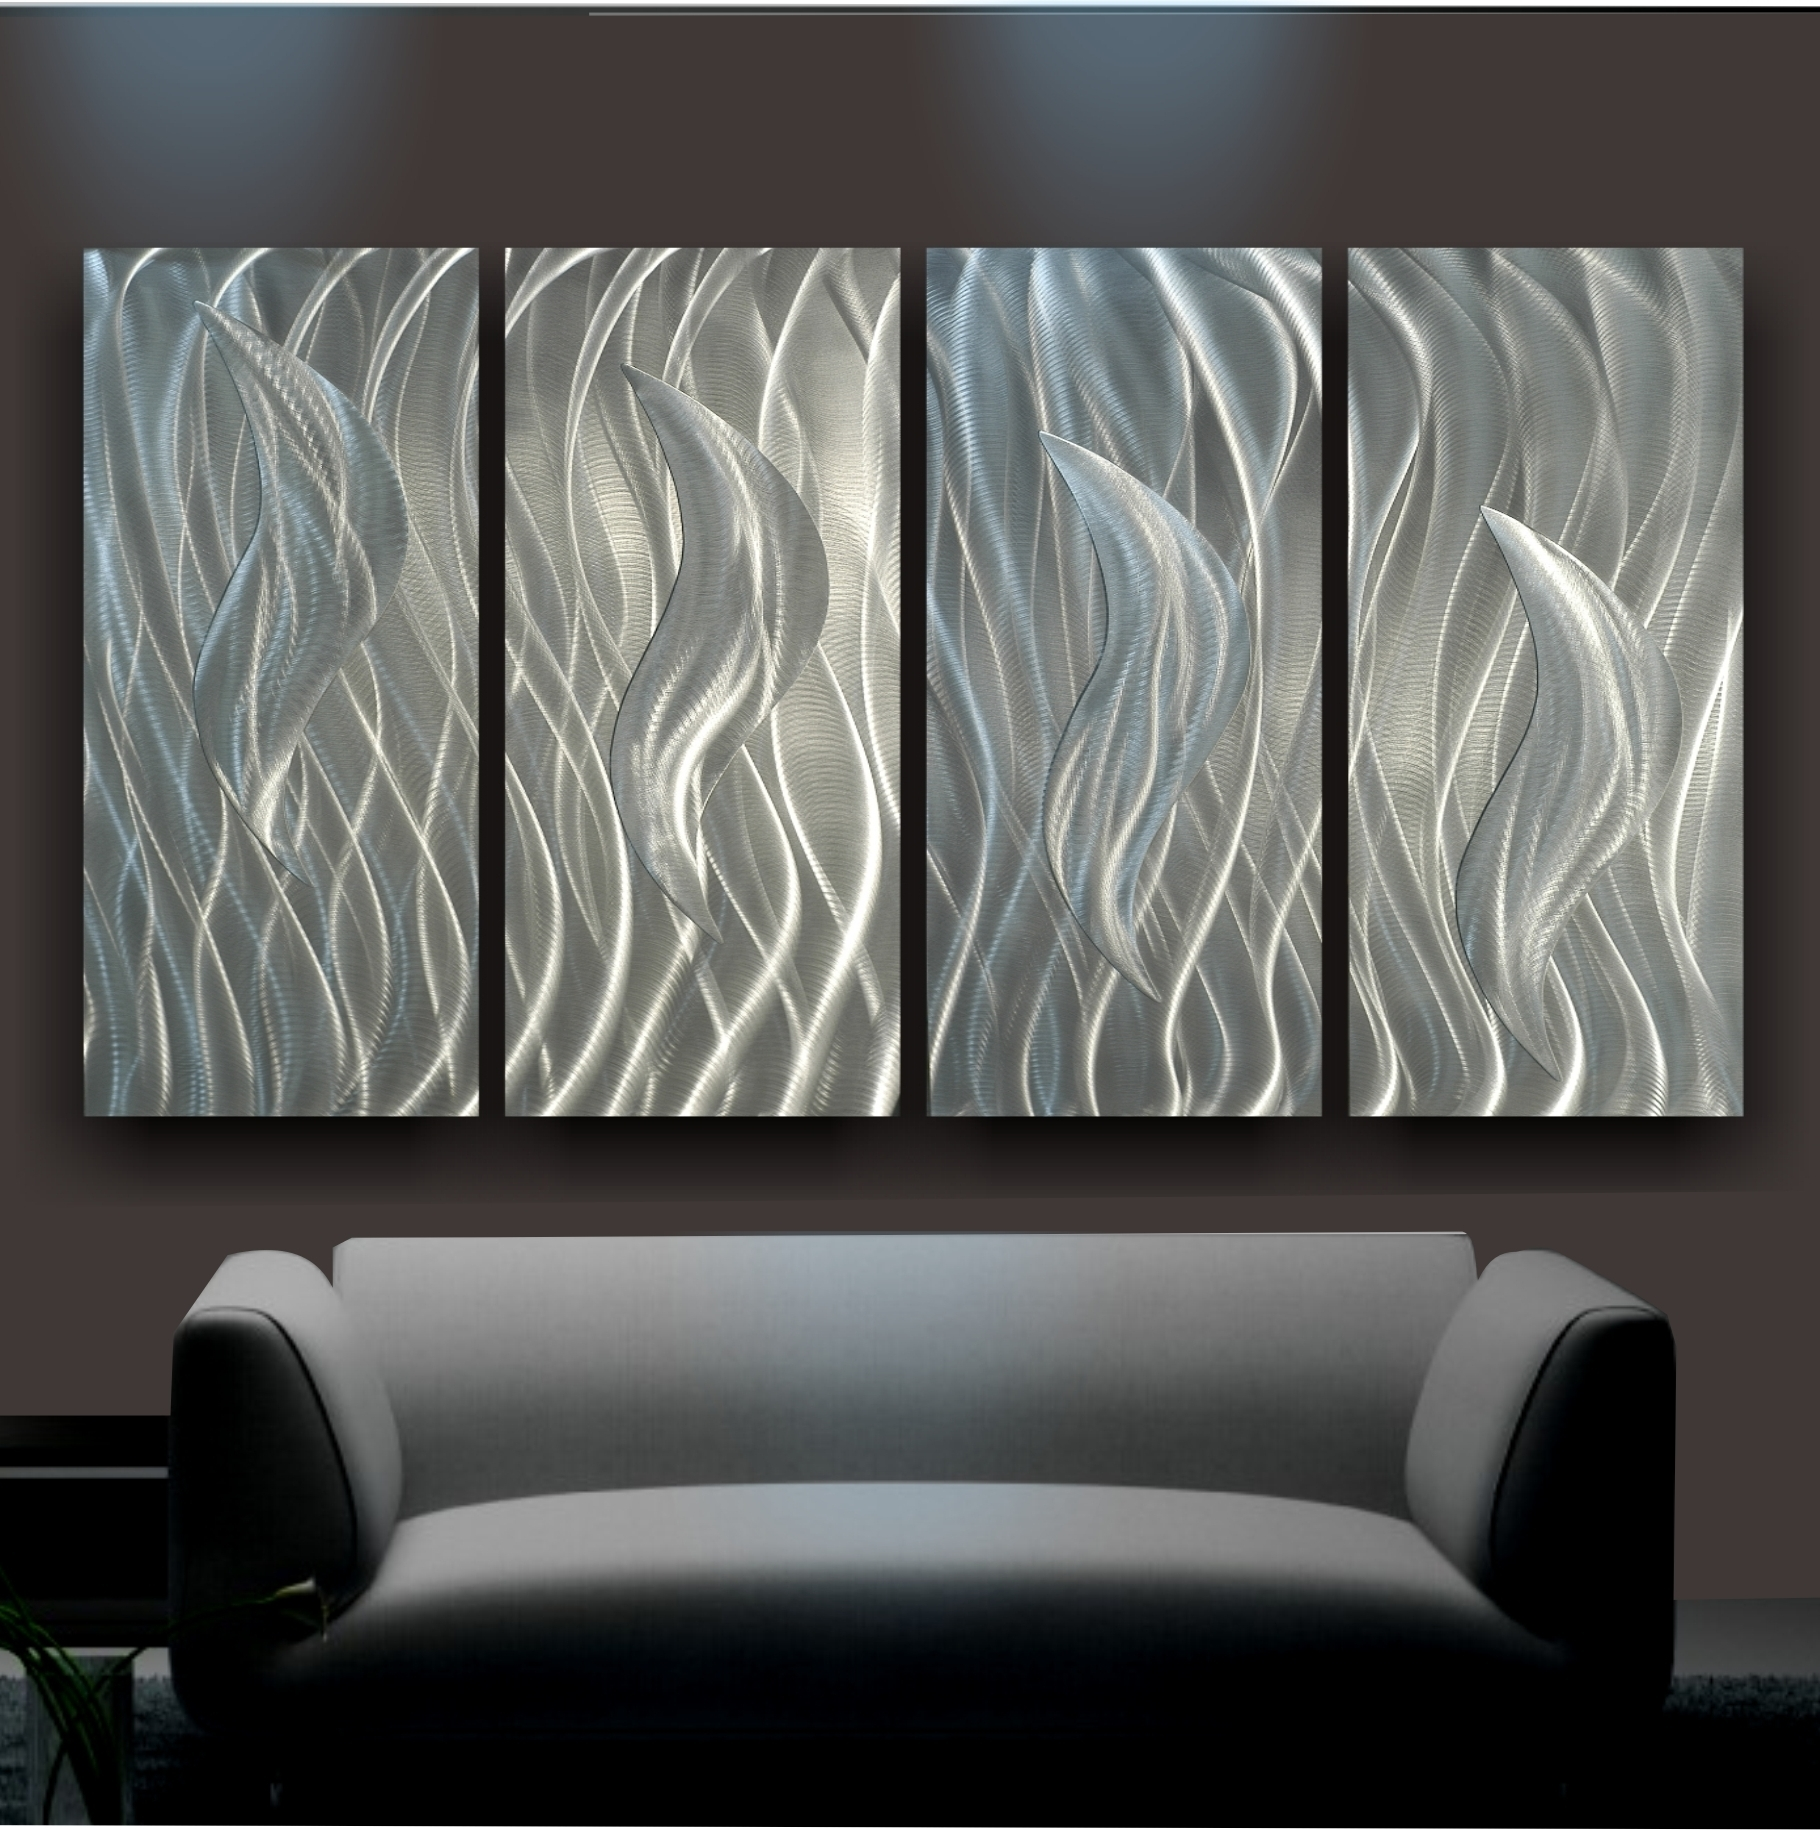 Steel Wall Surface Fine Art Is A Contemporary Sort Of Art Work Throughout Most Recent Abstract Aluminium Wall Art (View 4 of 20)